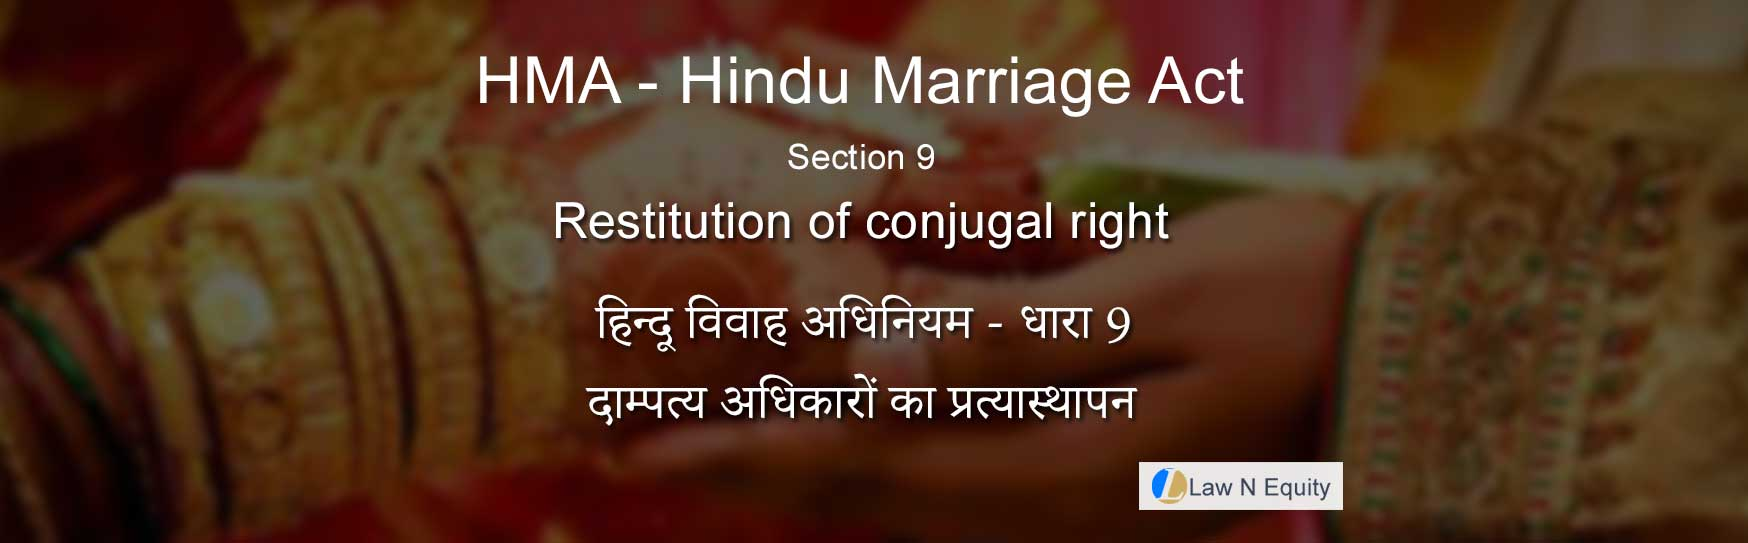 Hindu Marriage Act(HMA) Section 9